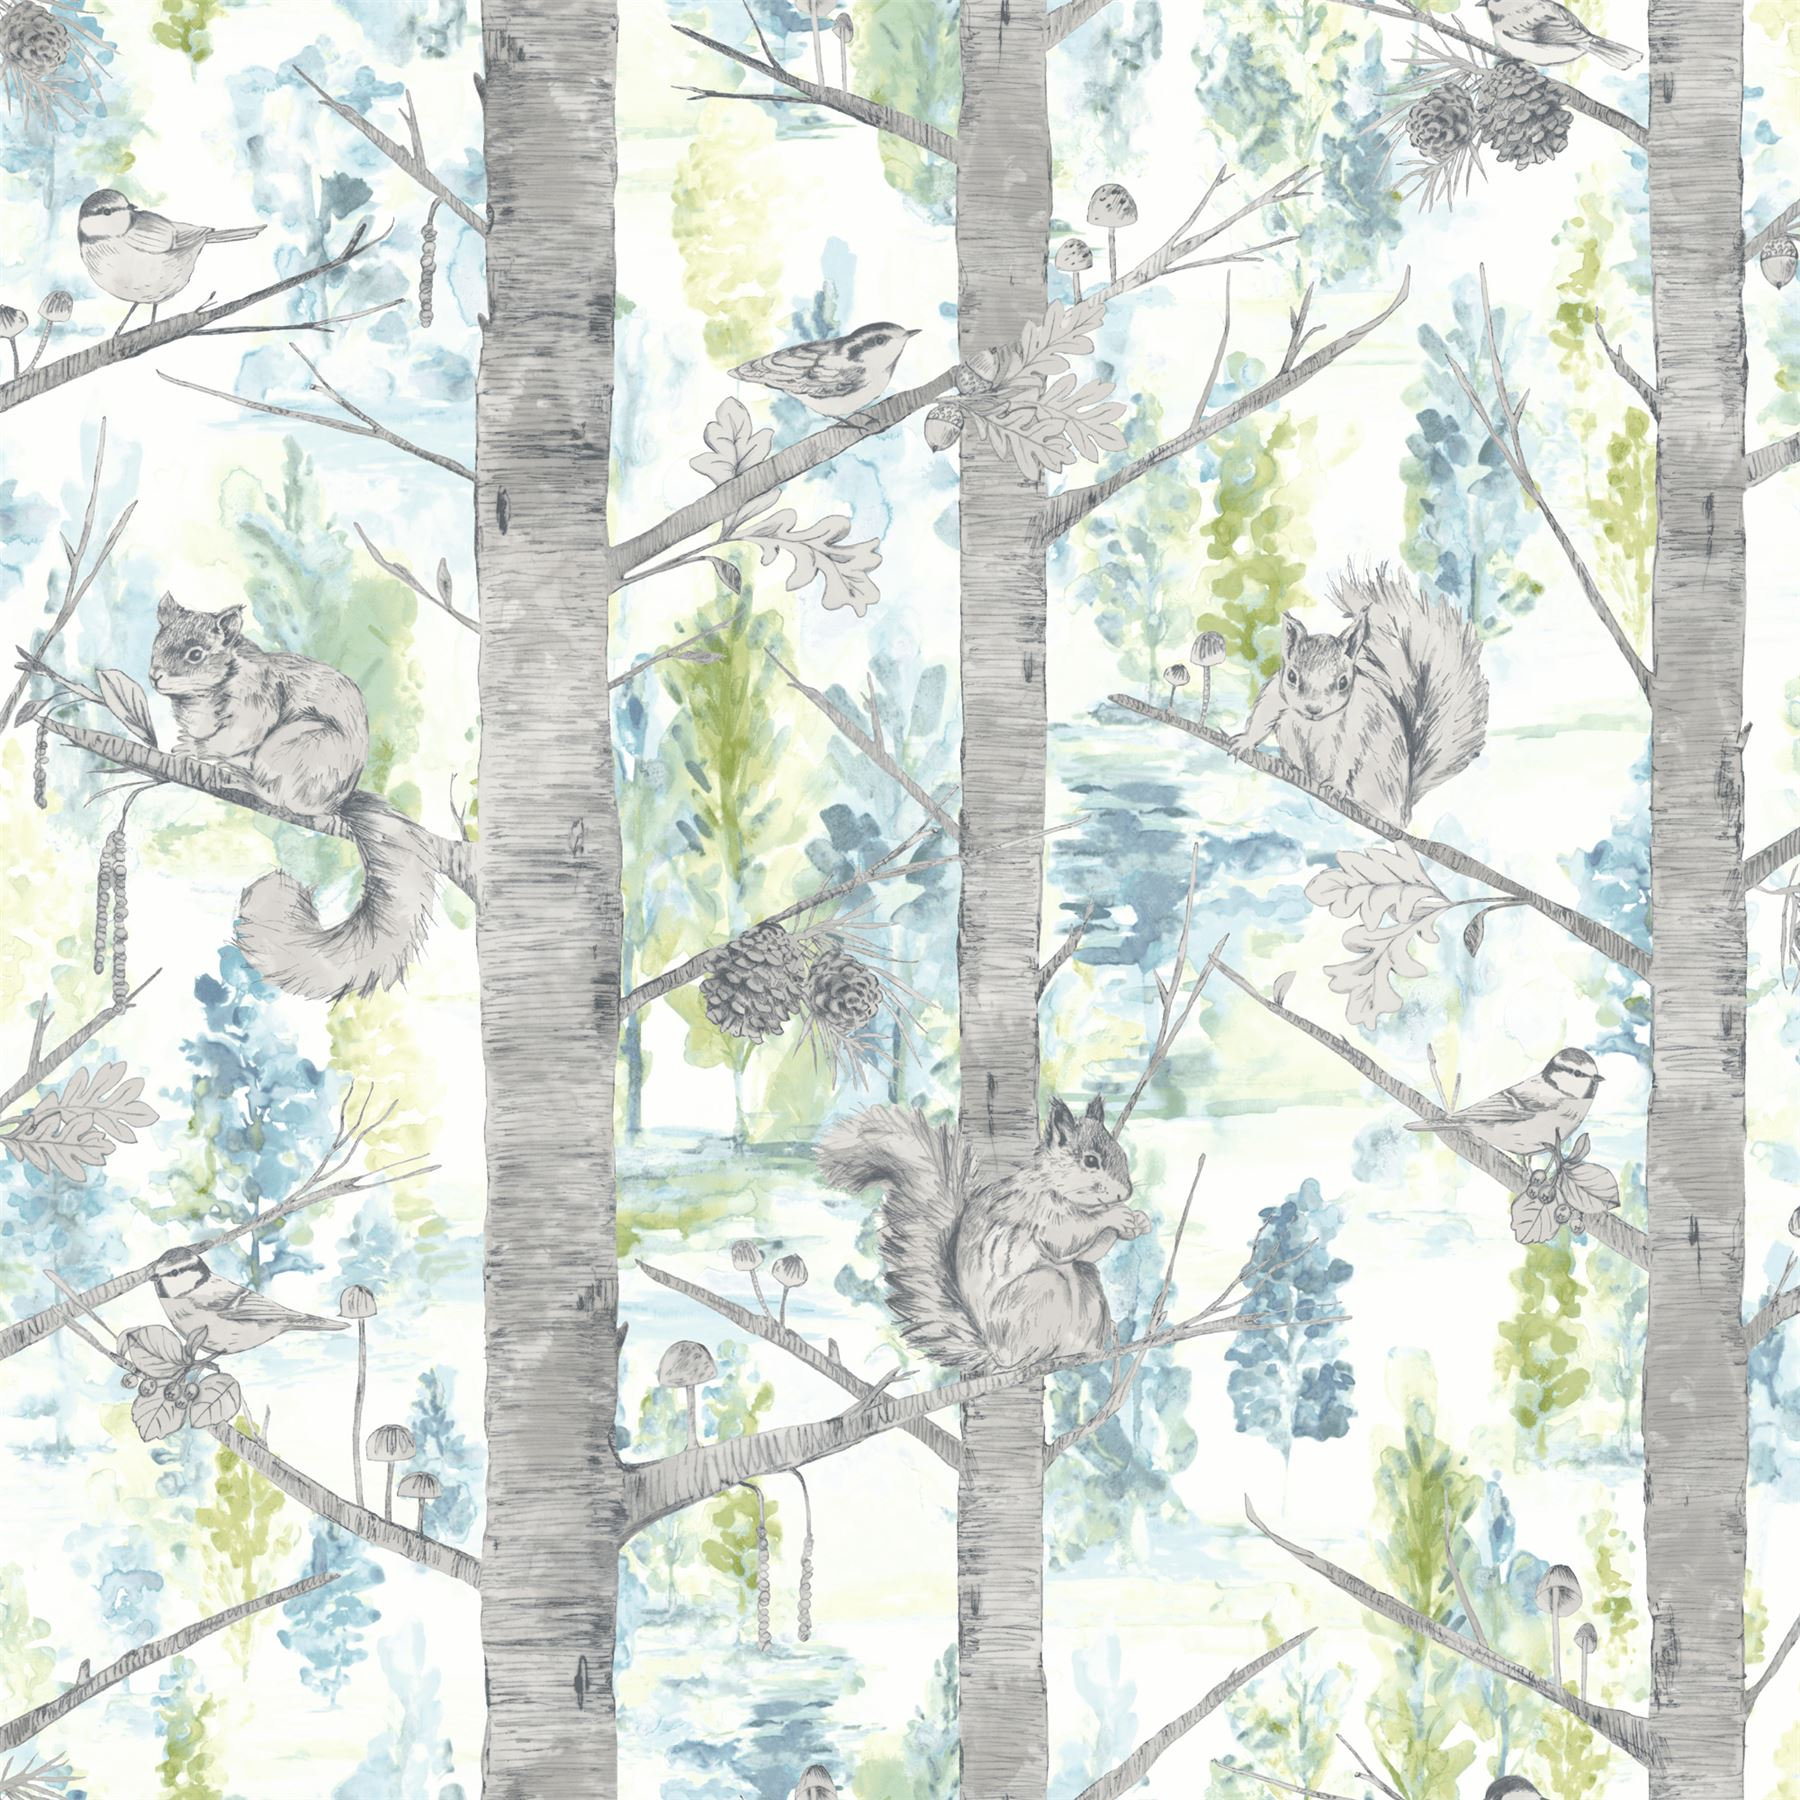 Details About Squirrels Trees Forest Wallpaper Birds Woodland Teal Silver Metallic Holden